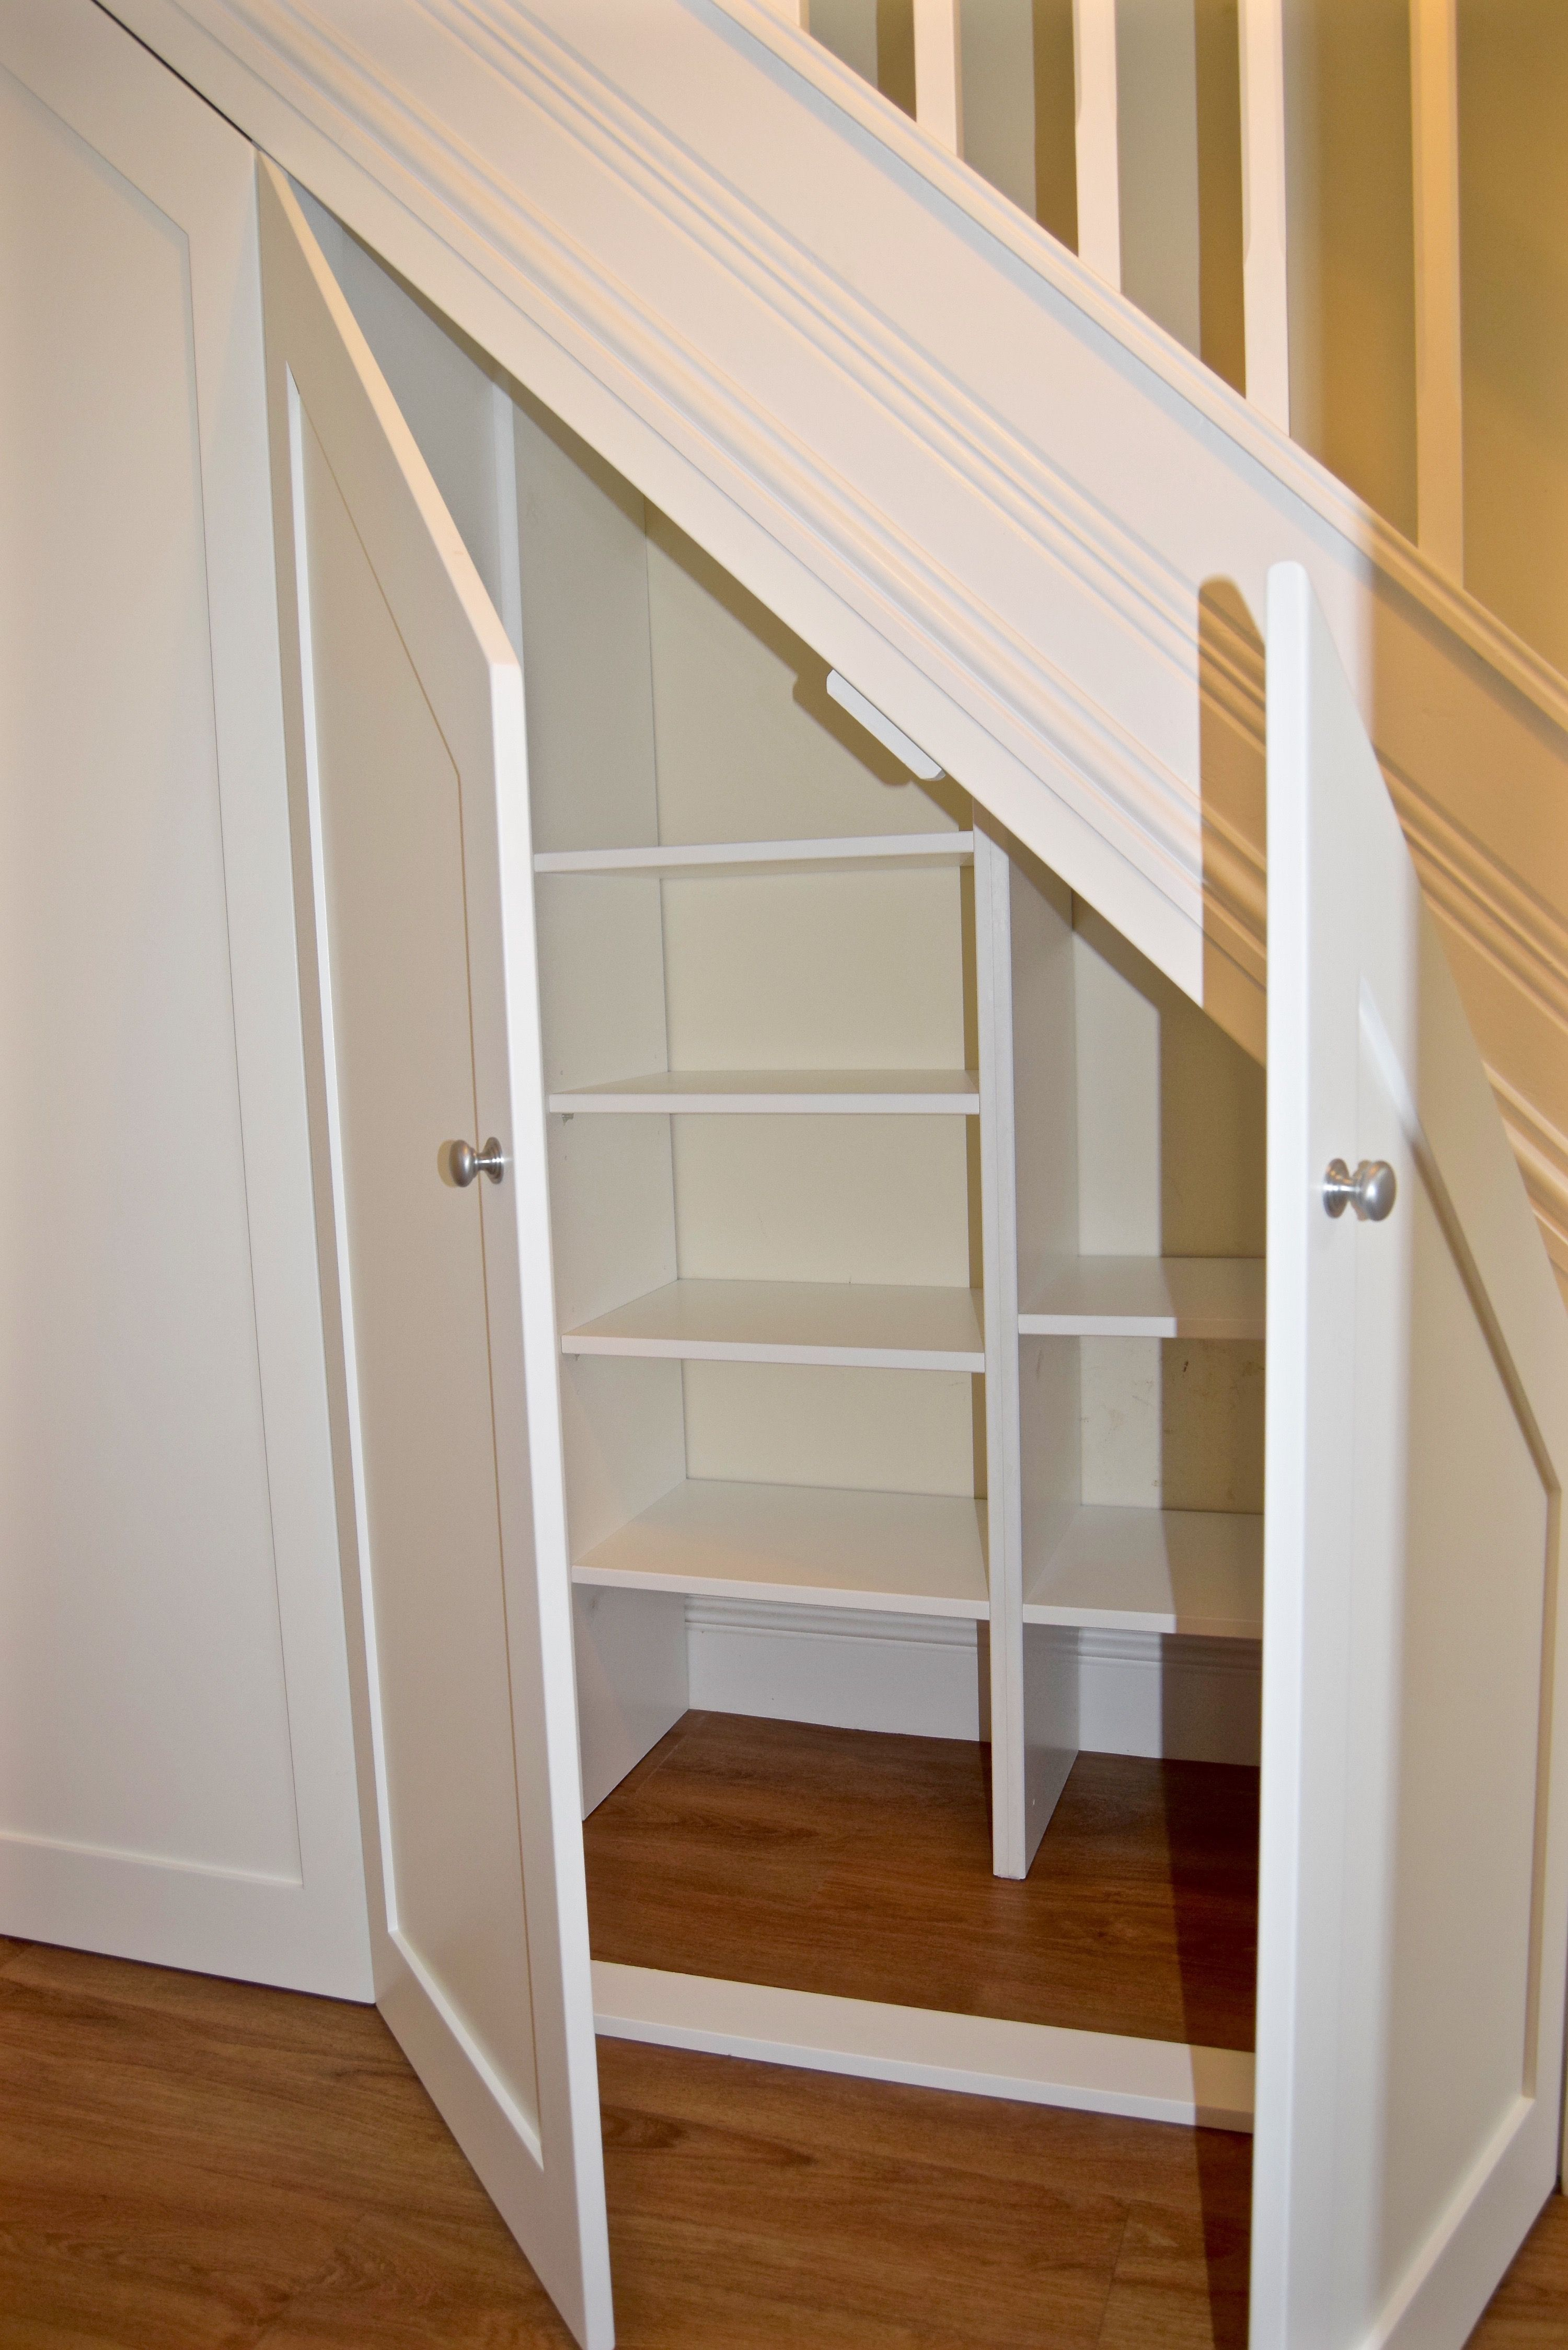 10 Under Stair Storage Ideas That Make Your House Look Stunning Shelves Under Stairs Staircase Storage Closet Under Stairs